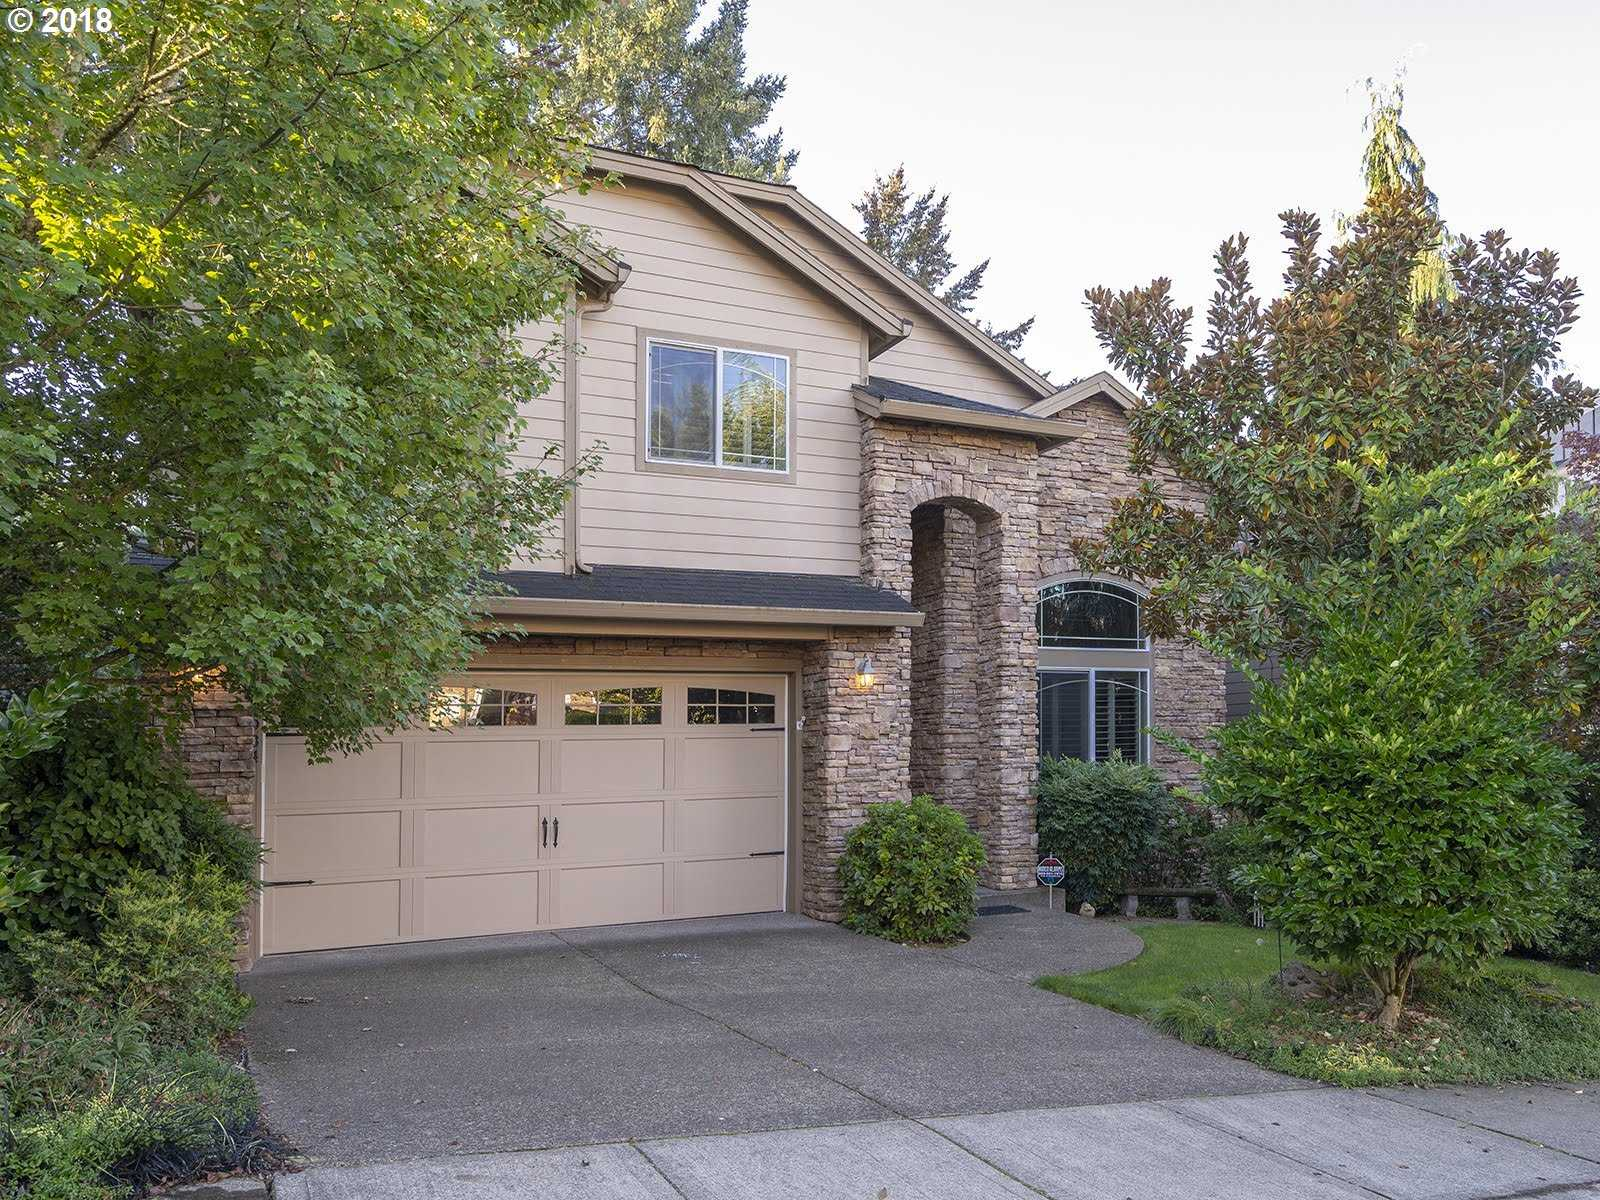 $519,900 - 4Br/3Ba -  for Sale in Valley View, Tigard